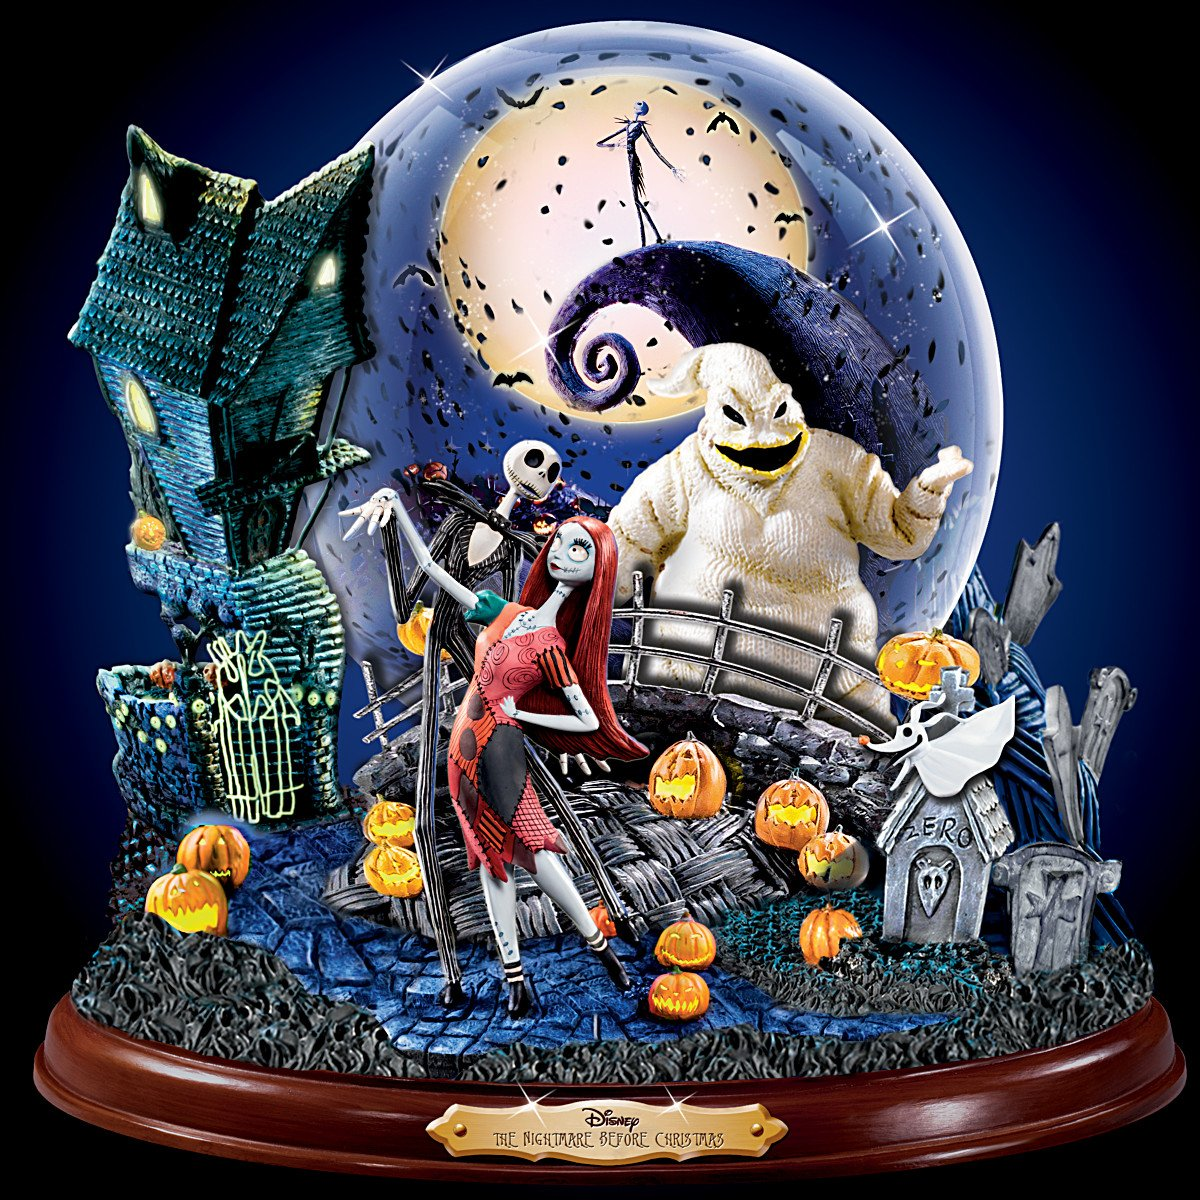 Disney Tim Burton's The Nightmare Before Christmas Illuminated Musical Snowglobe by The Bradford Exchange by Bradford Exchange (Image #5)